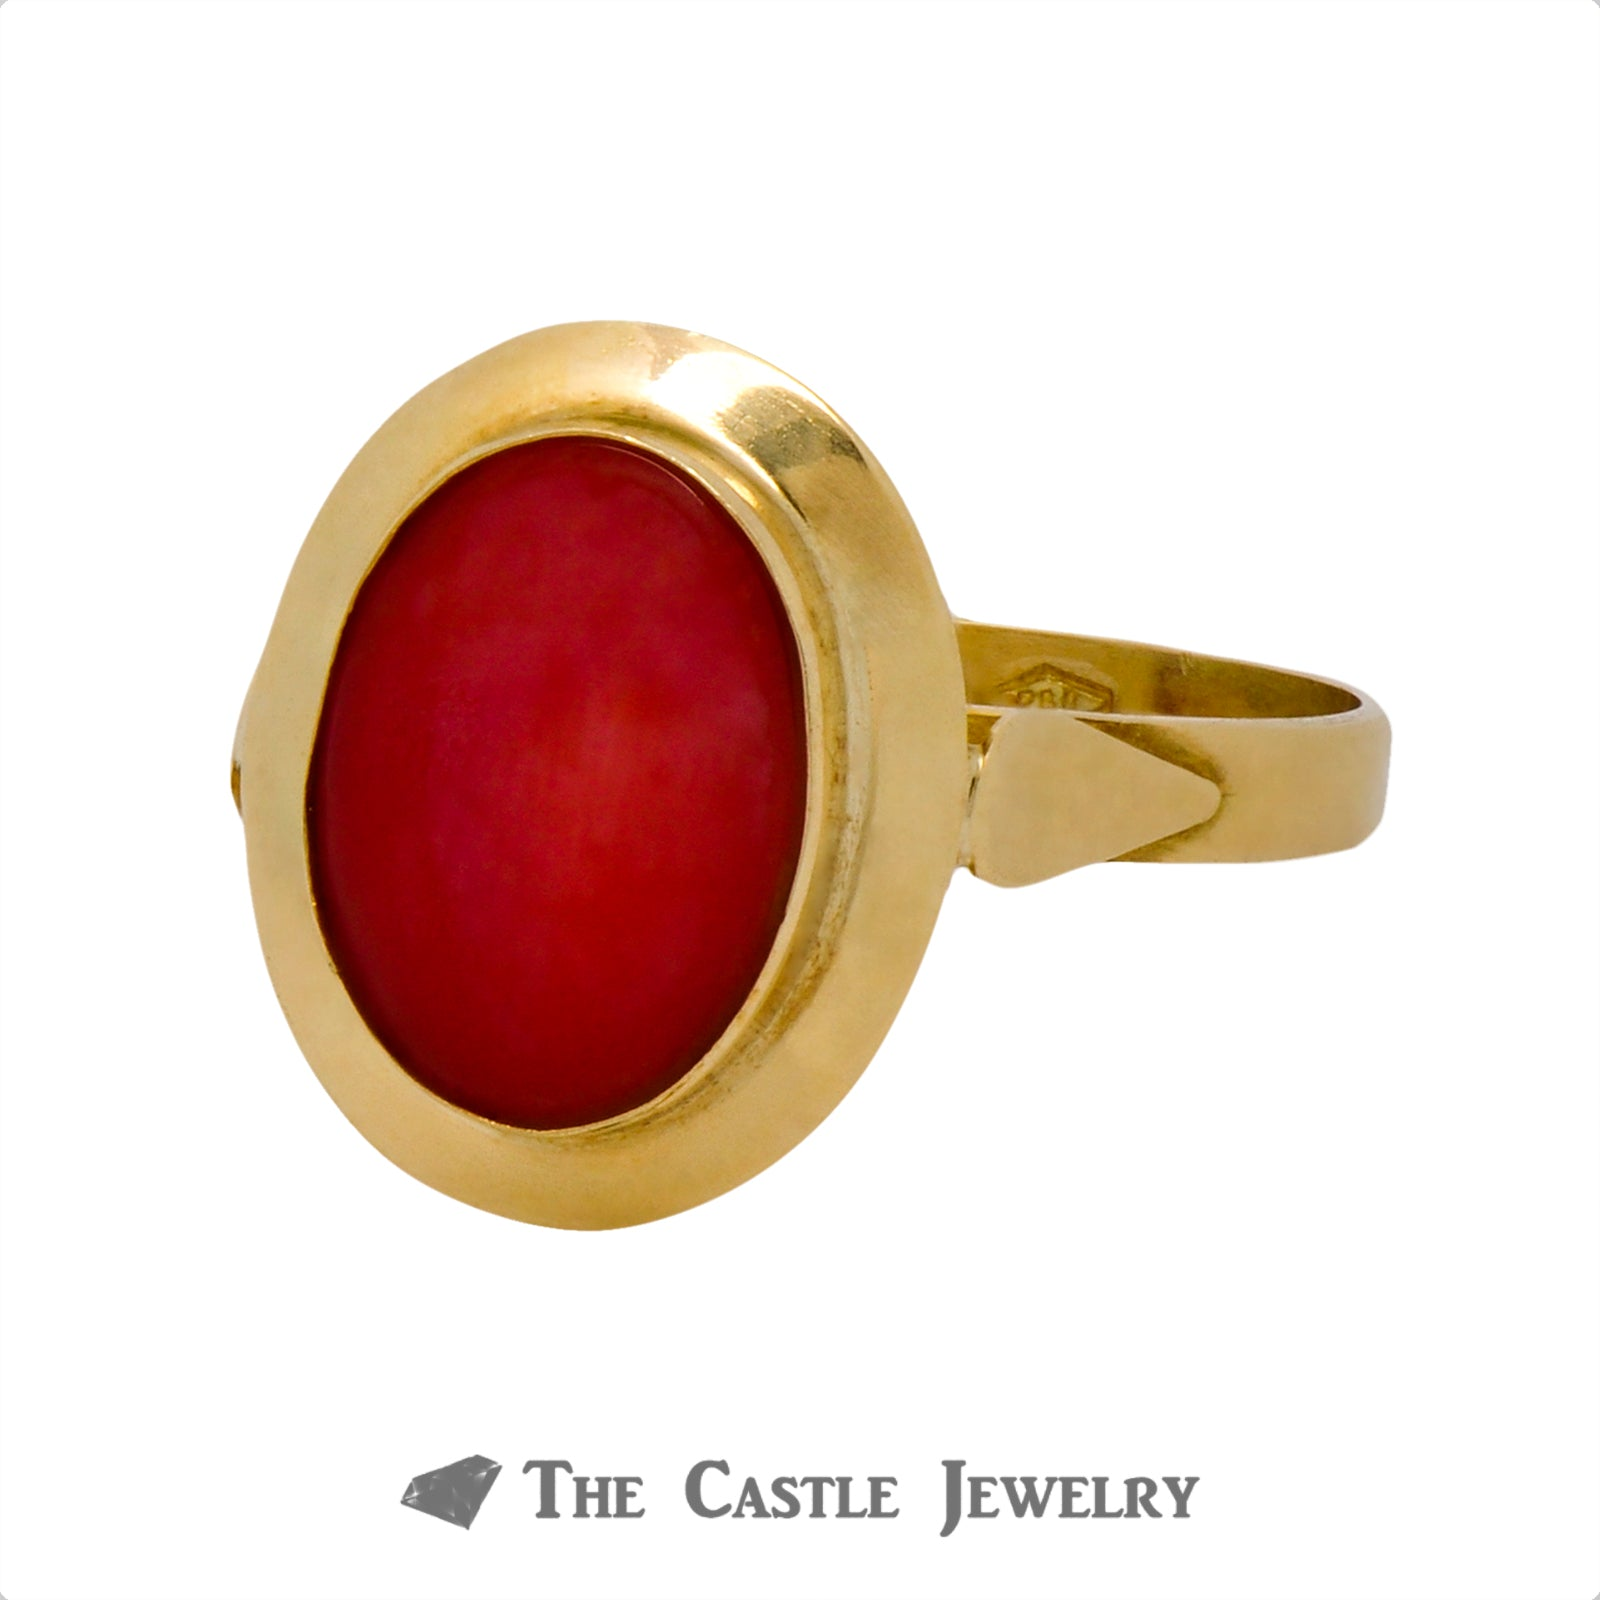 Oval Cut Coral Ring with Polished Bezel in 18k Yellow Gold-2